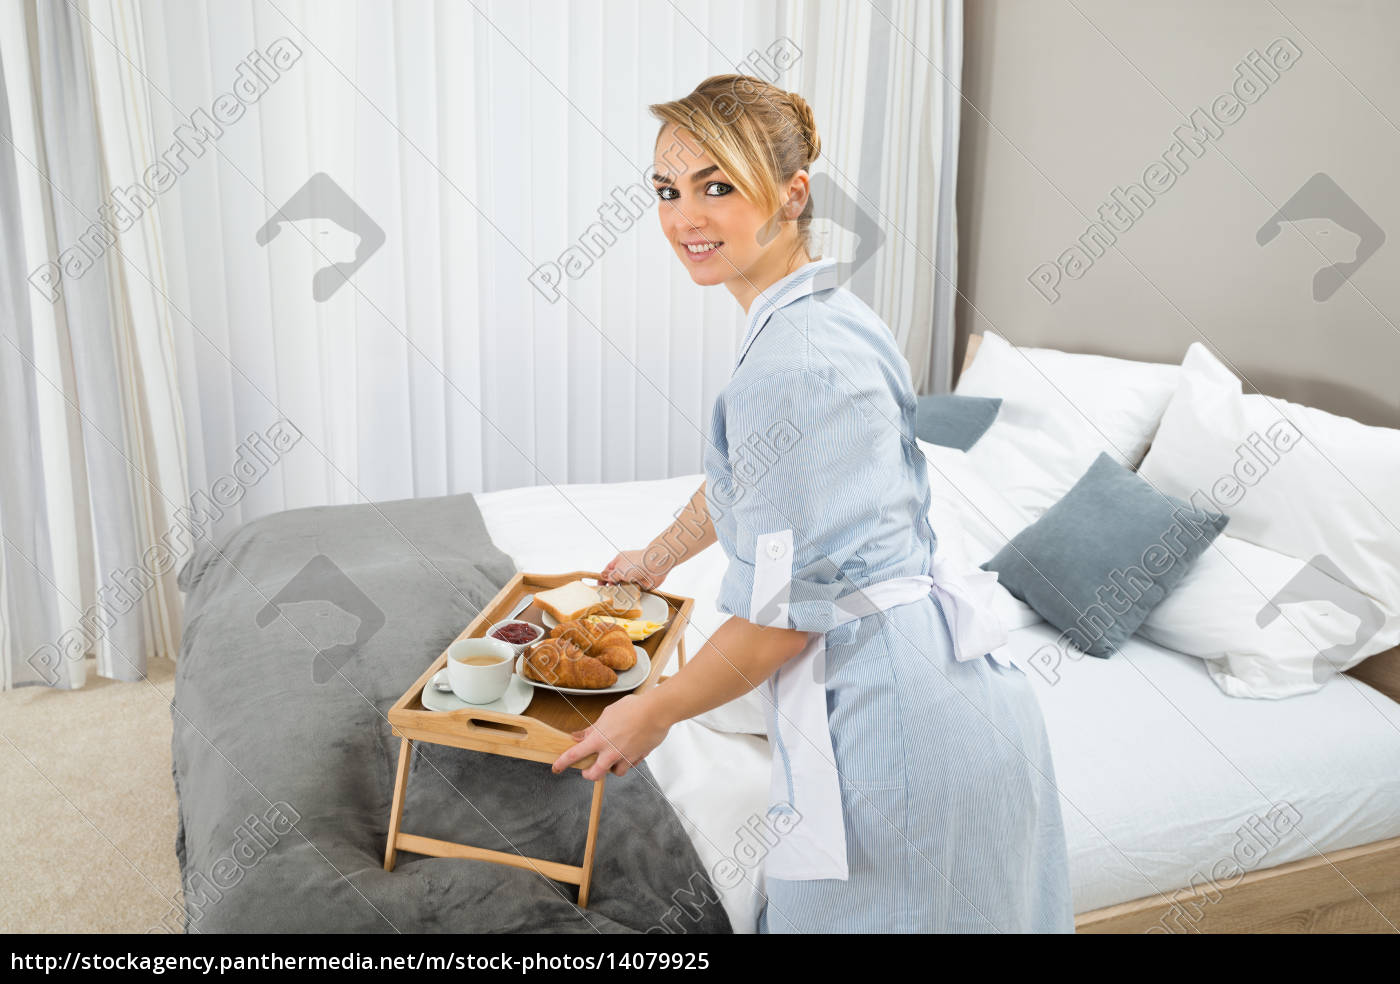 maid, keeping, breakfast, in, hotel, room - 14079925